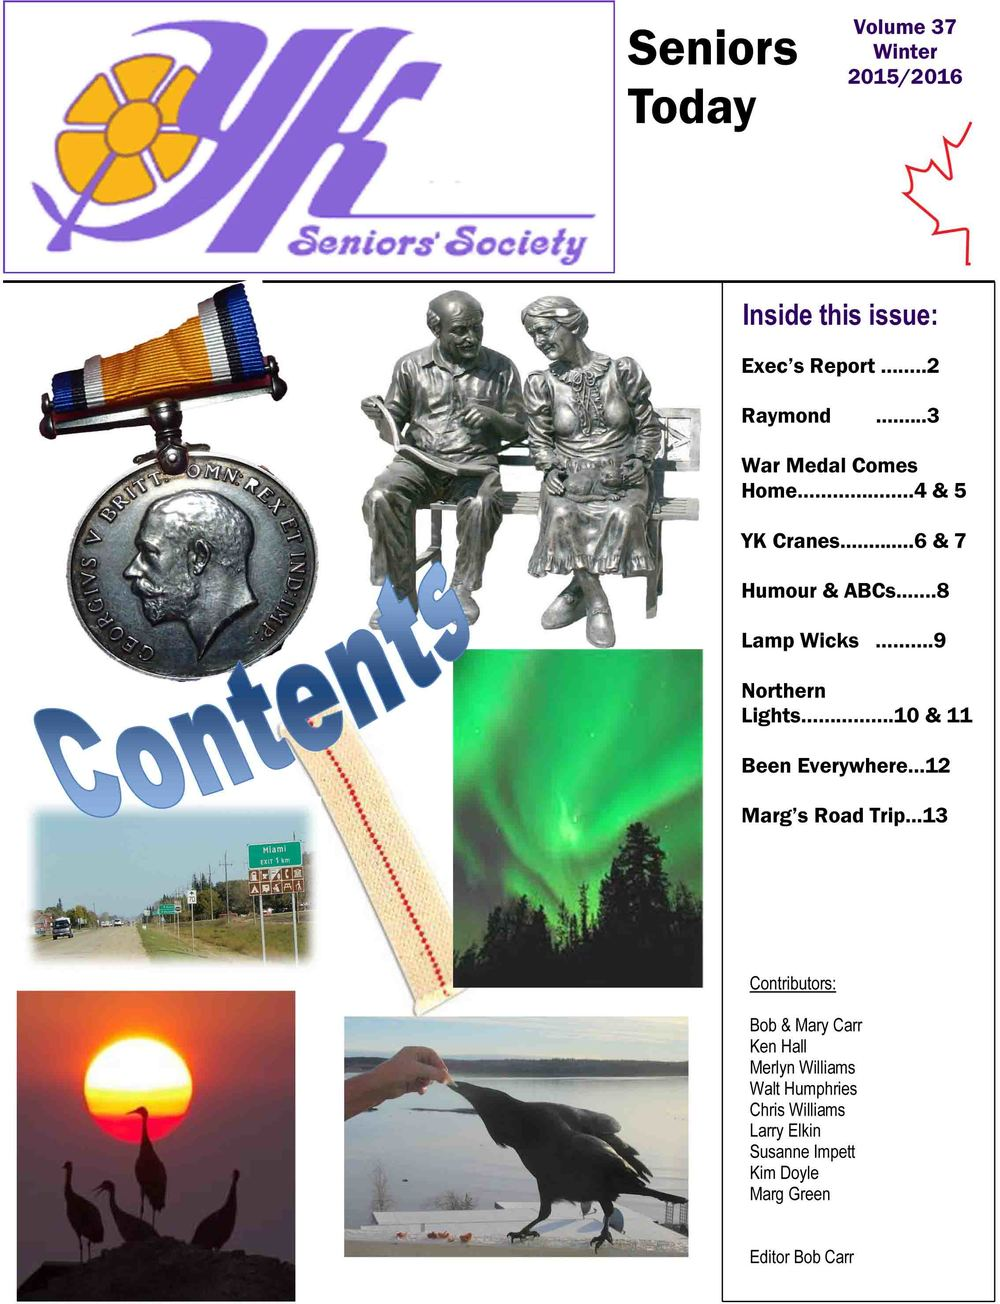 Vol 37 Winter 2015/ 2016